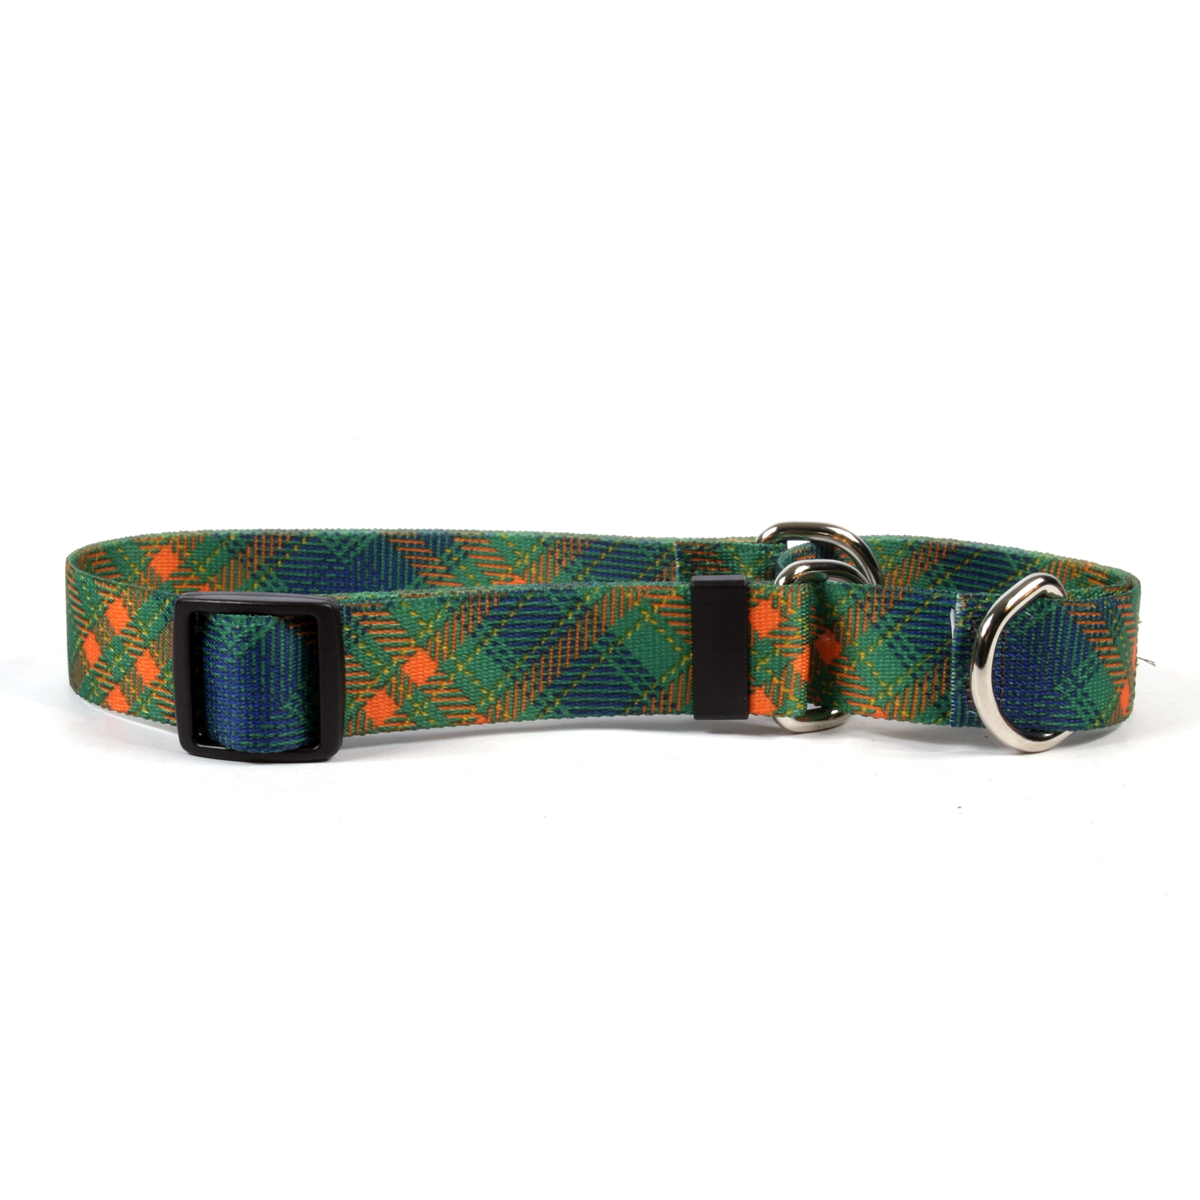 Green Kilt Martingale Collar